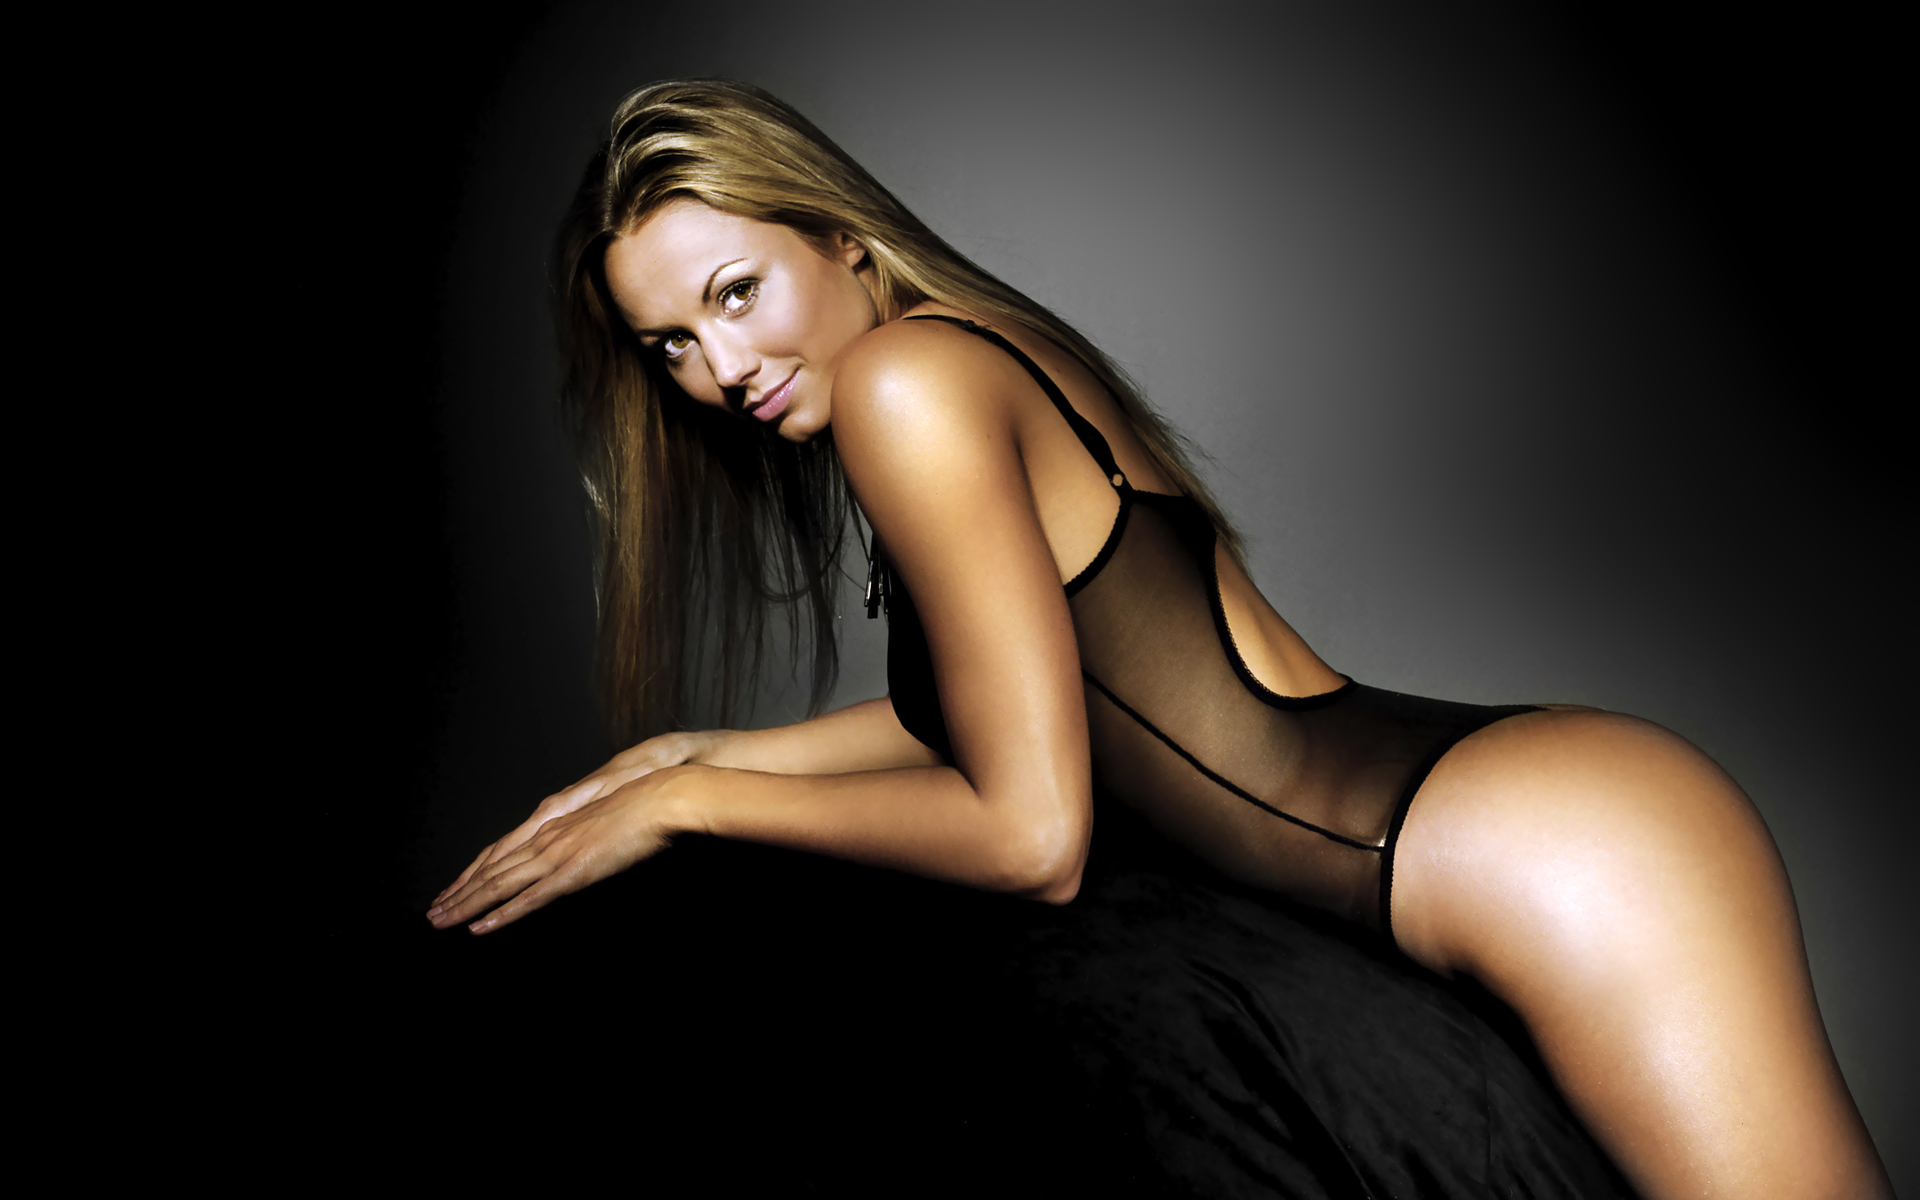 stacy keibler 1440x900 wallpapers - photo #31